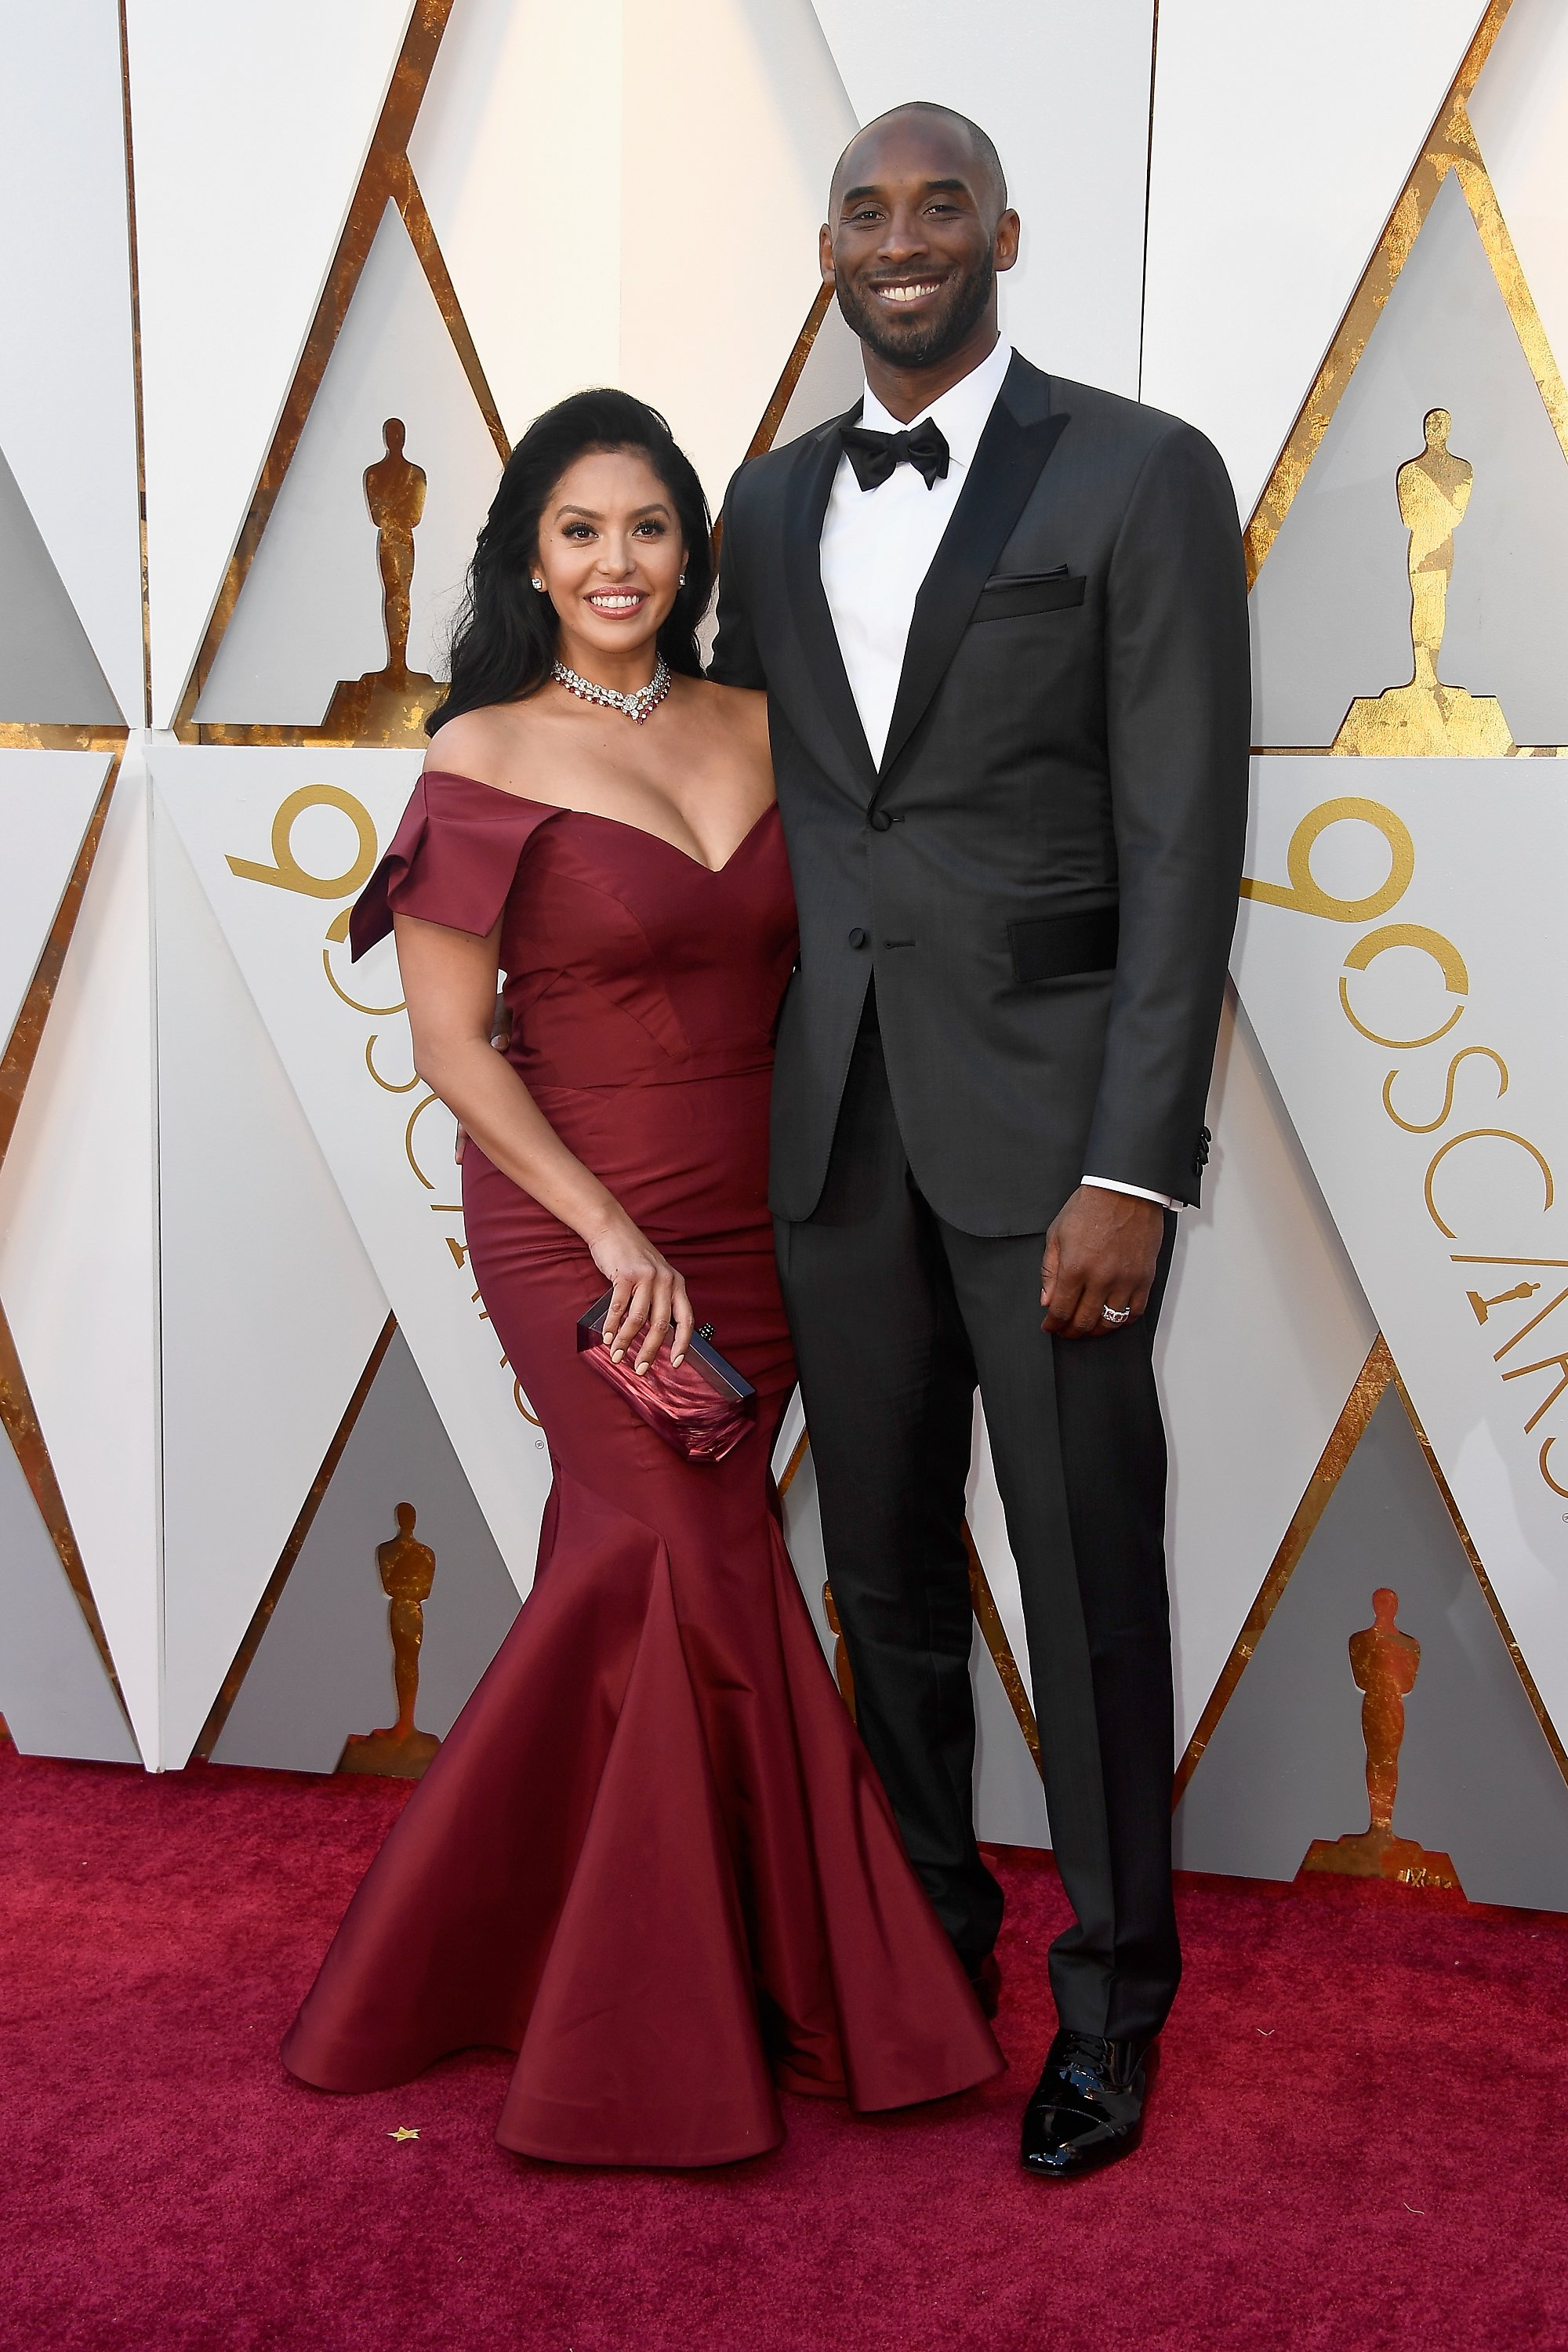 Vanessa Bryant & Kobe Bryant at the 90th Annual Academy Awards on March 4, 2018 in California | Photo: Getty Images